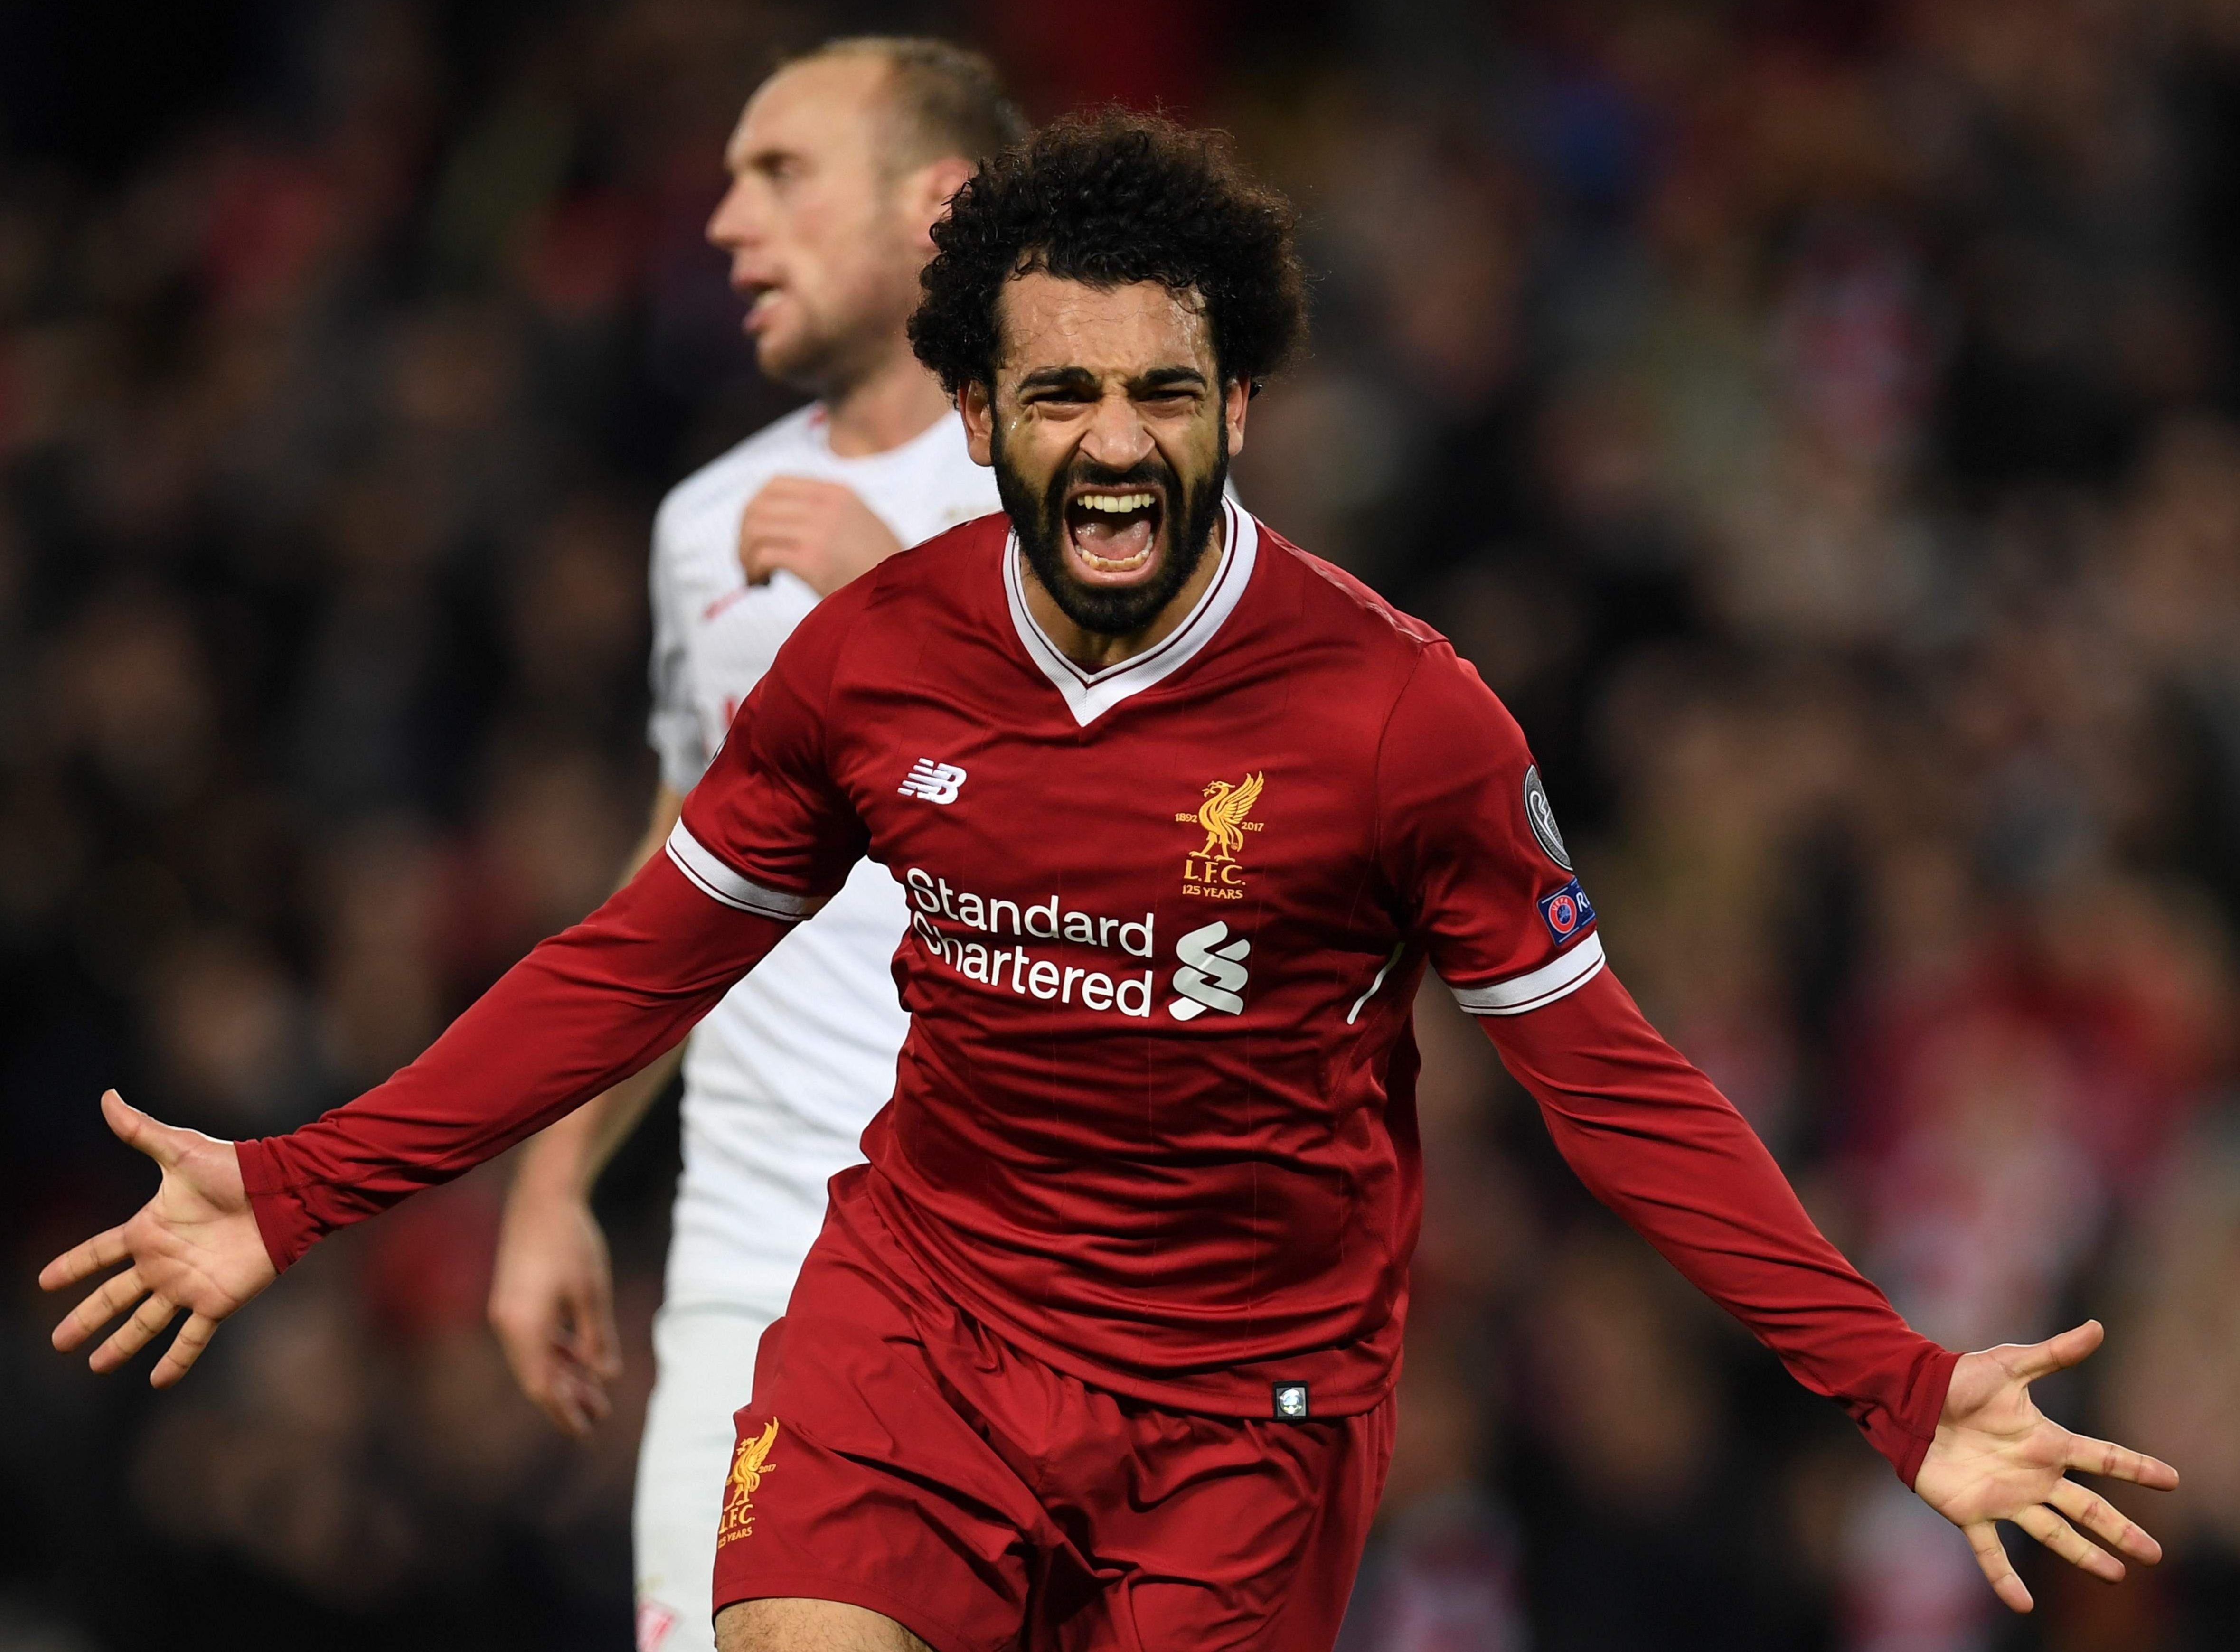 But rely on Mohamed Salah to provide some fireworks on Sunday